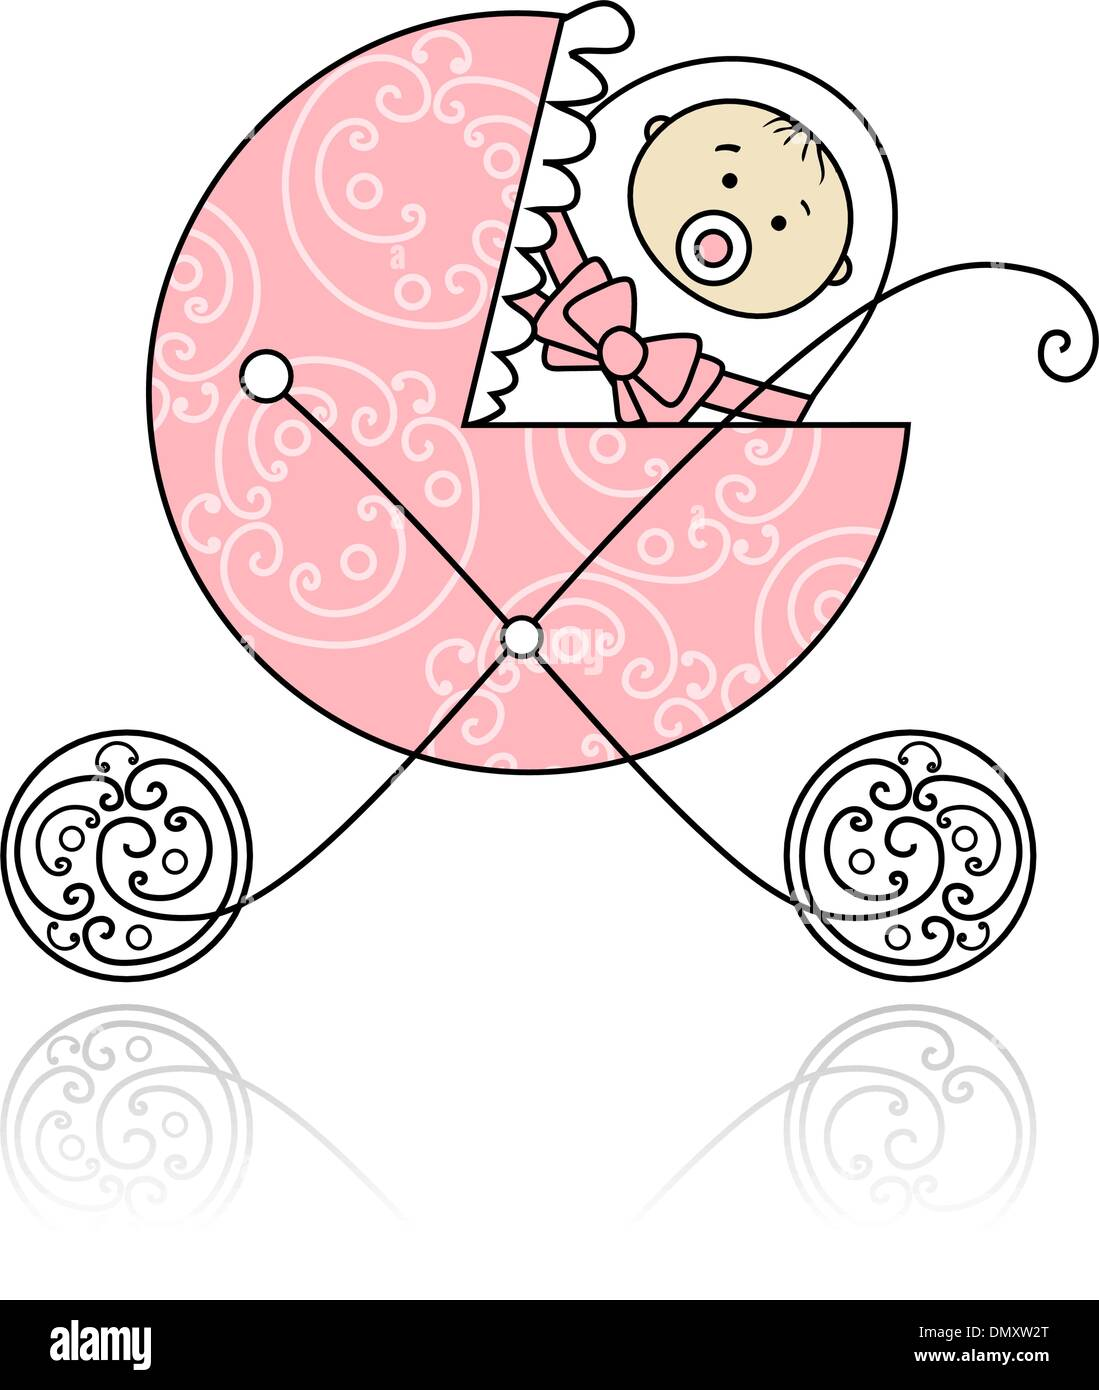 Newborn in baby's buggy for your design - Stock Image